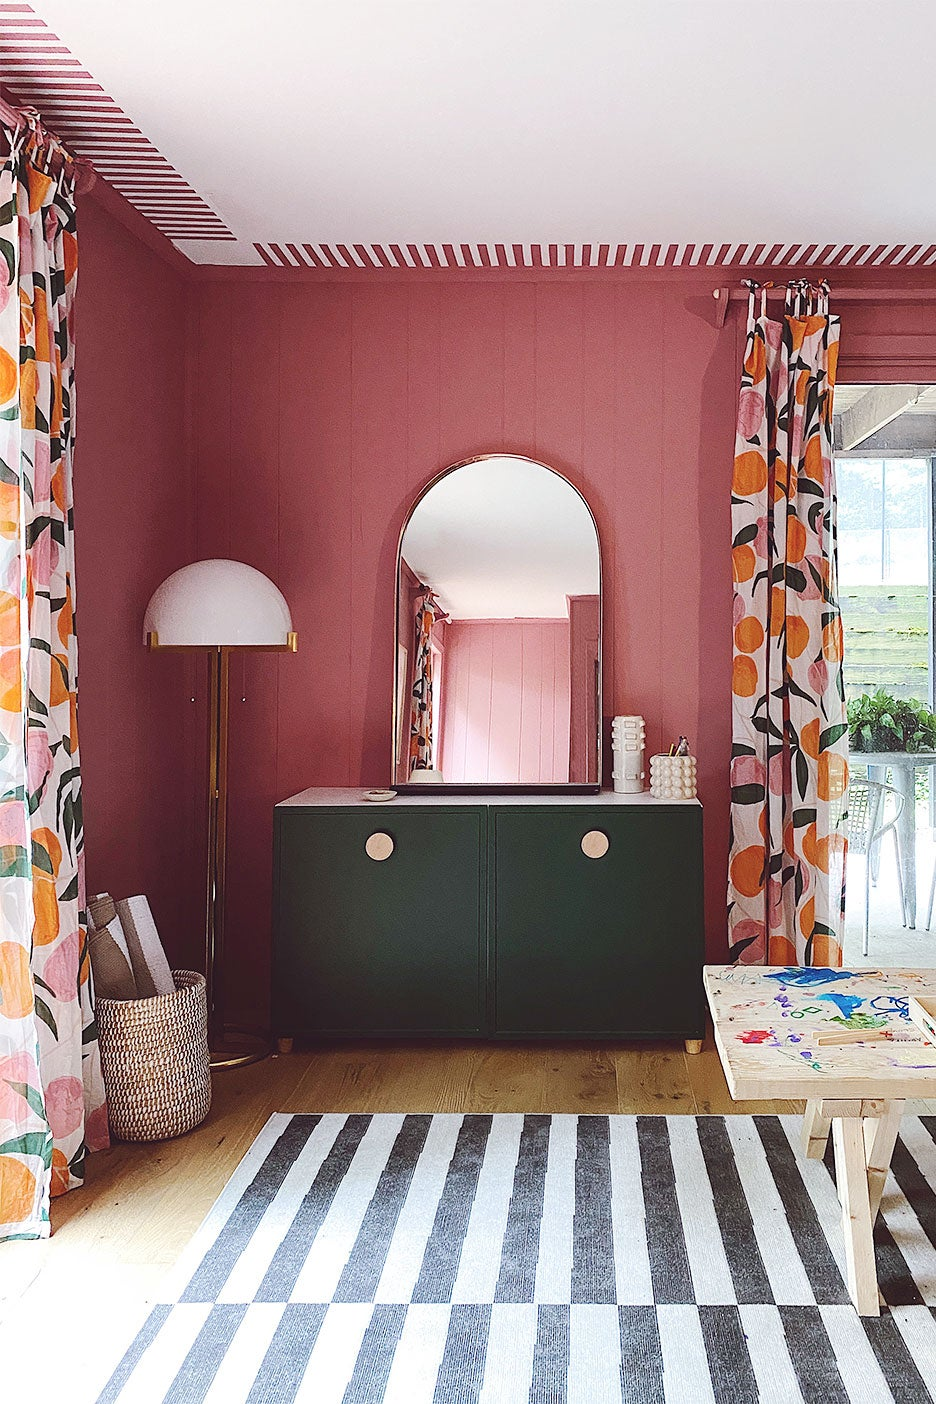 pink room with green cabinet and mirror